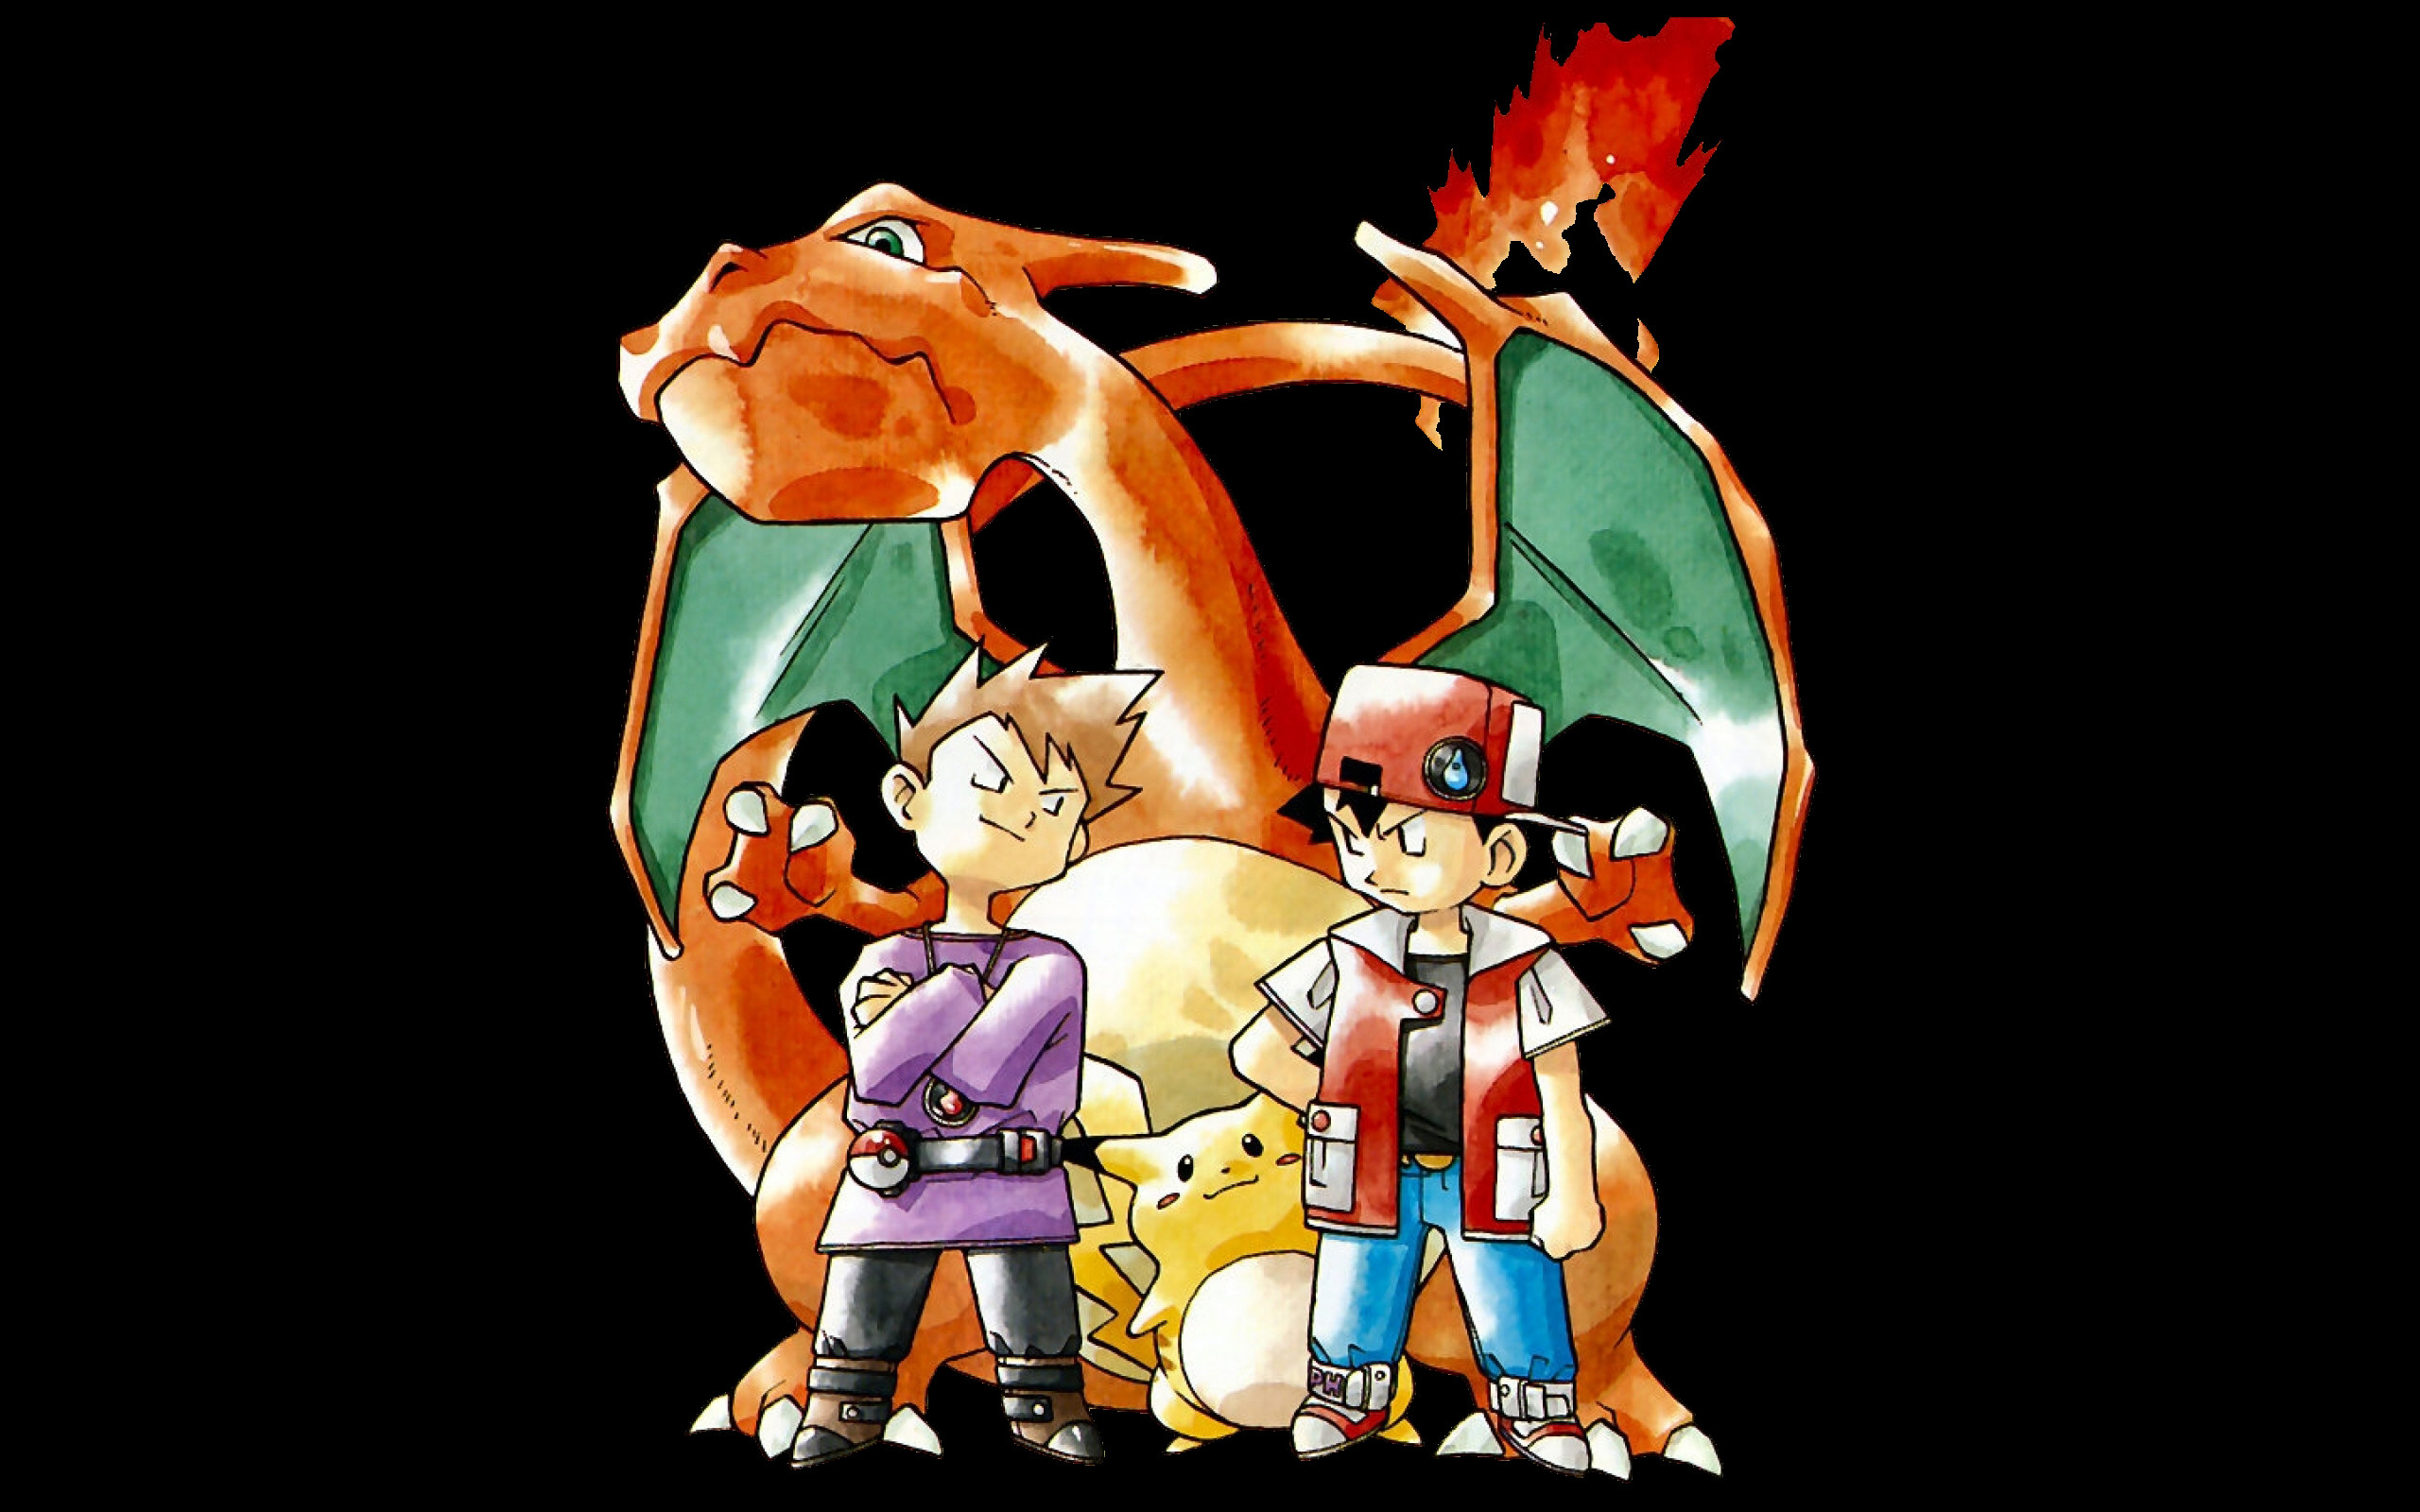 Free Download Pokemon Trainer Red Wallpaper 2560x1600 For Your